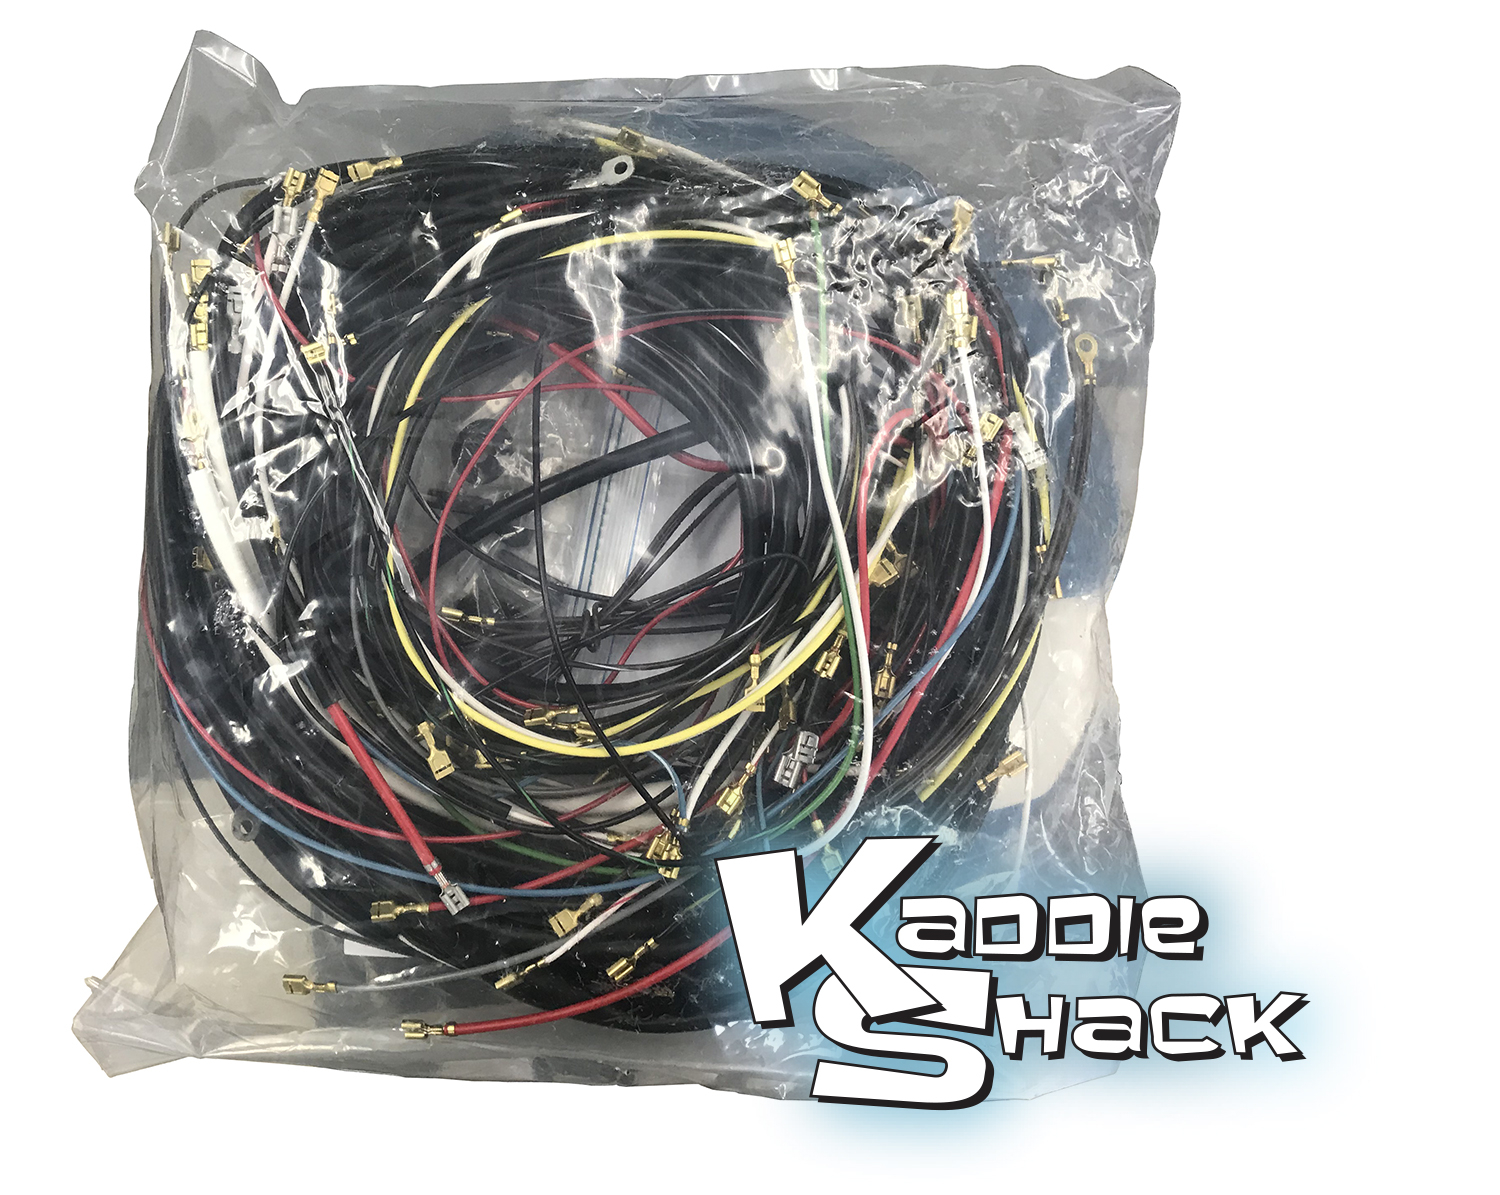 complete wiring harness, fits '61 only convertible bug - kaddie shack:  parts & accessories for vintage vw's